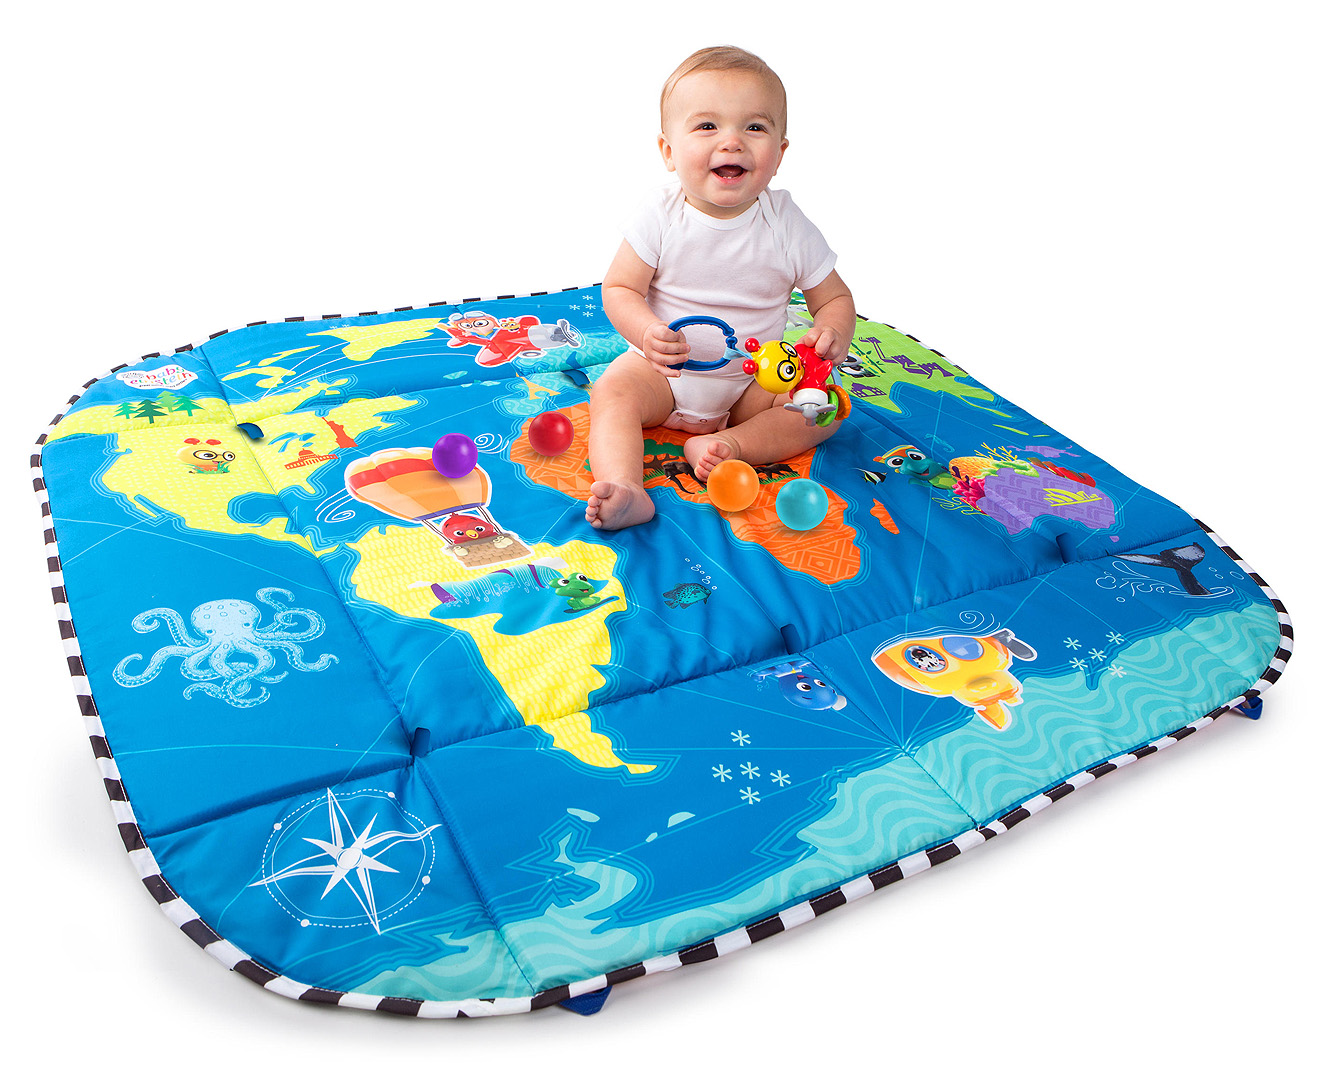 070d0dbe5 Baby Einstein 5-in-1 World Of Discovery Learning Gym - Multi